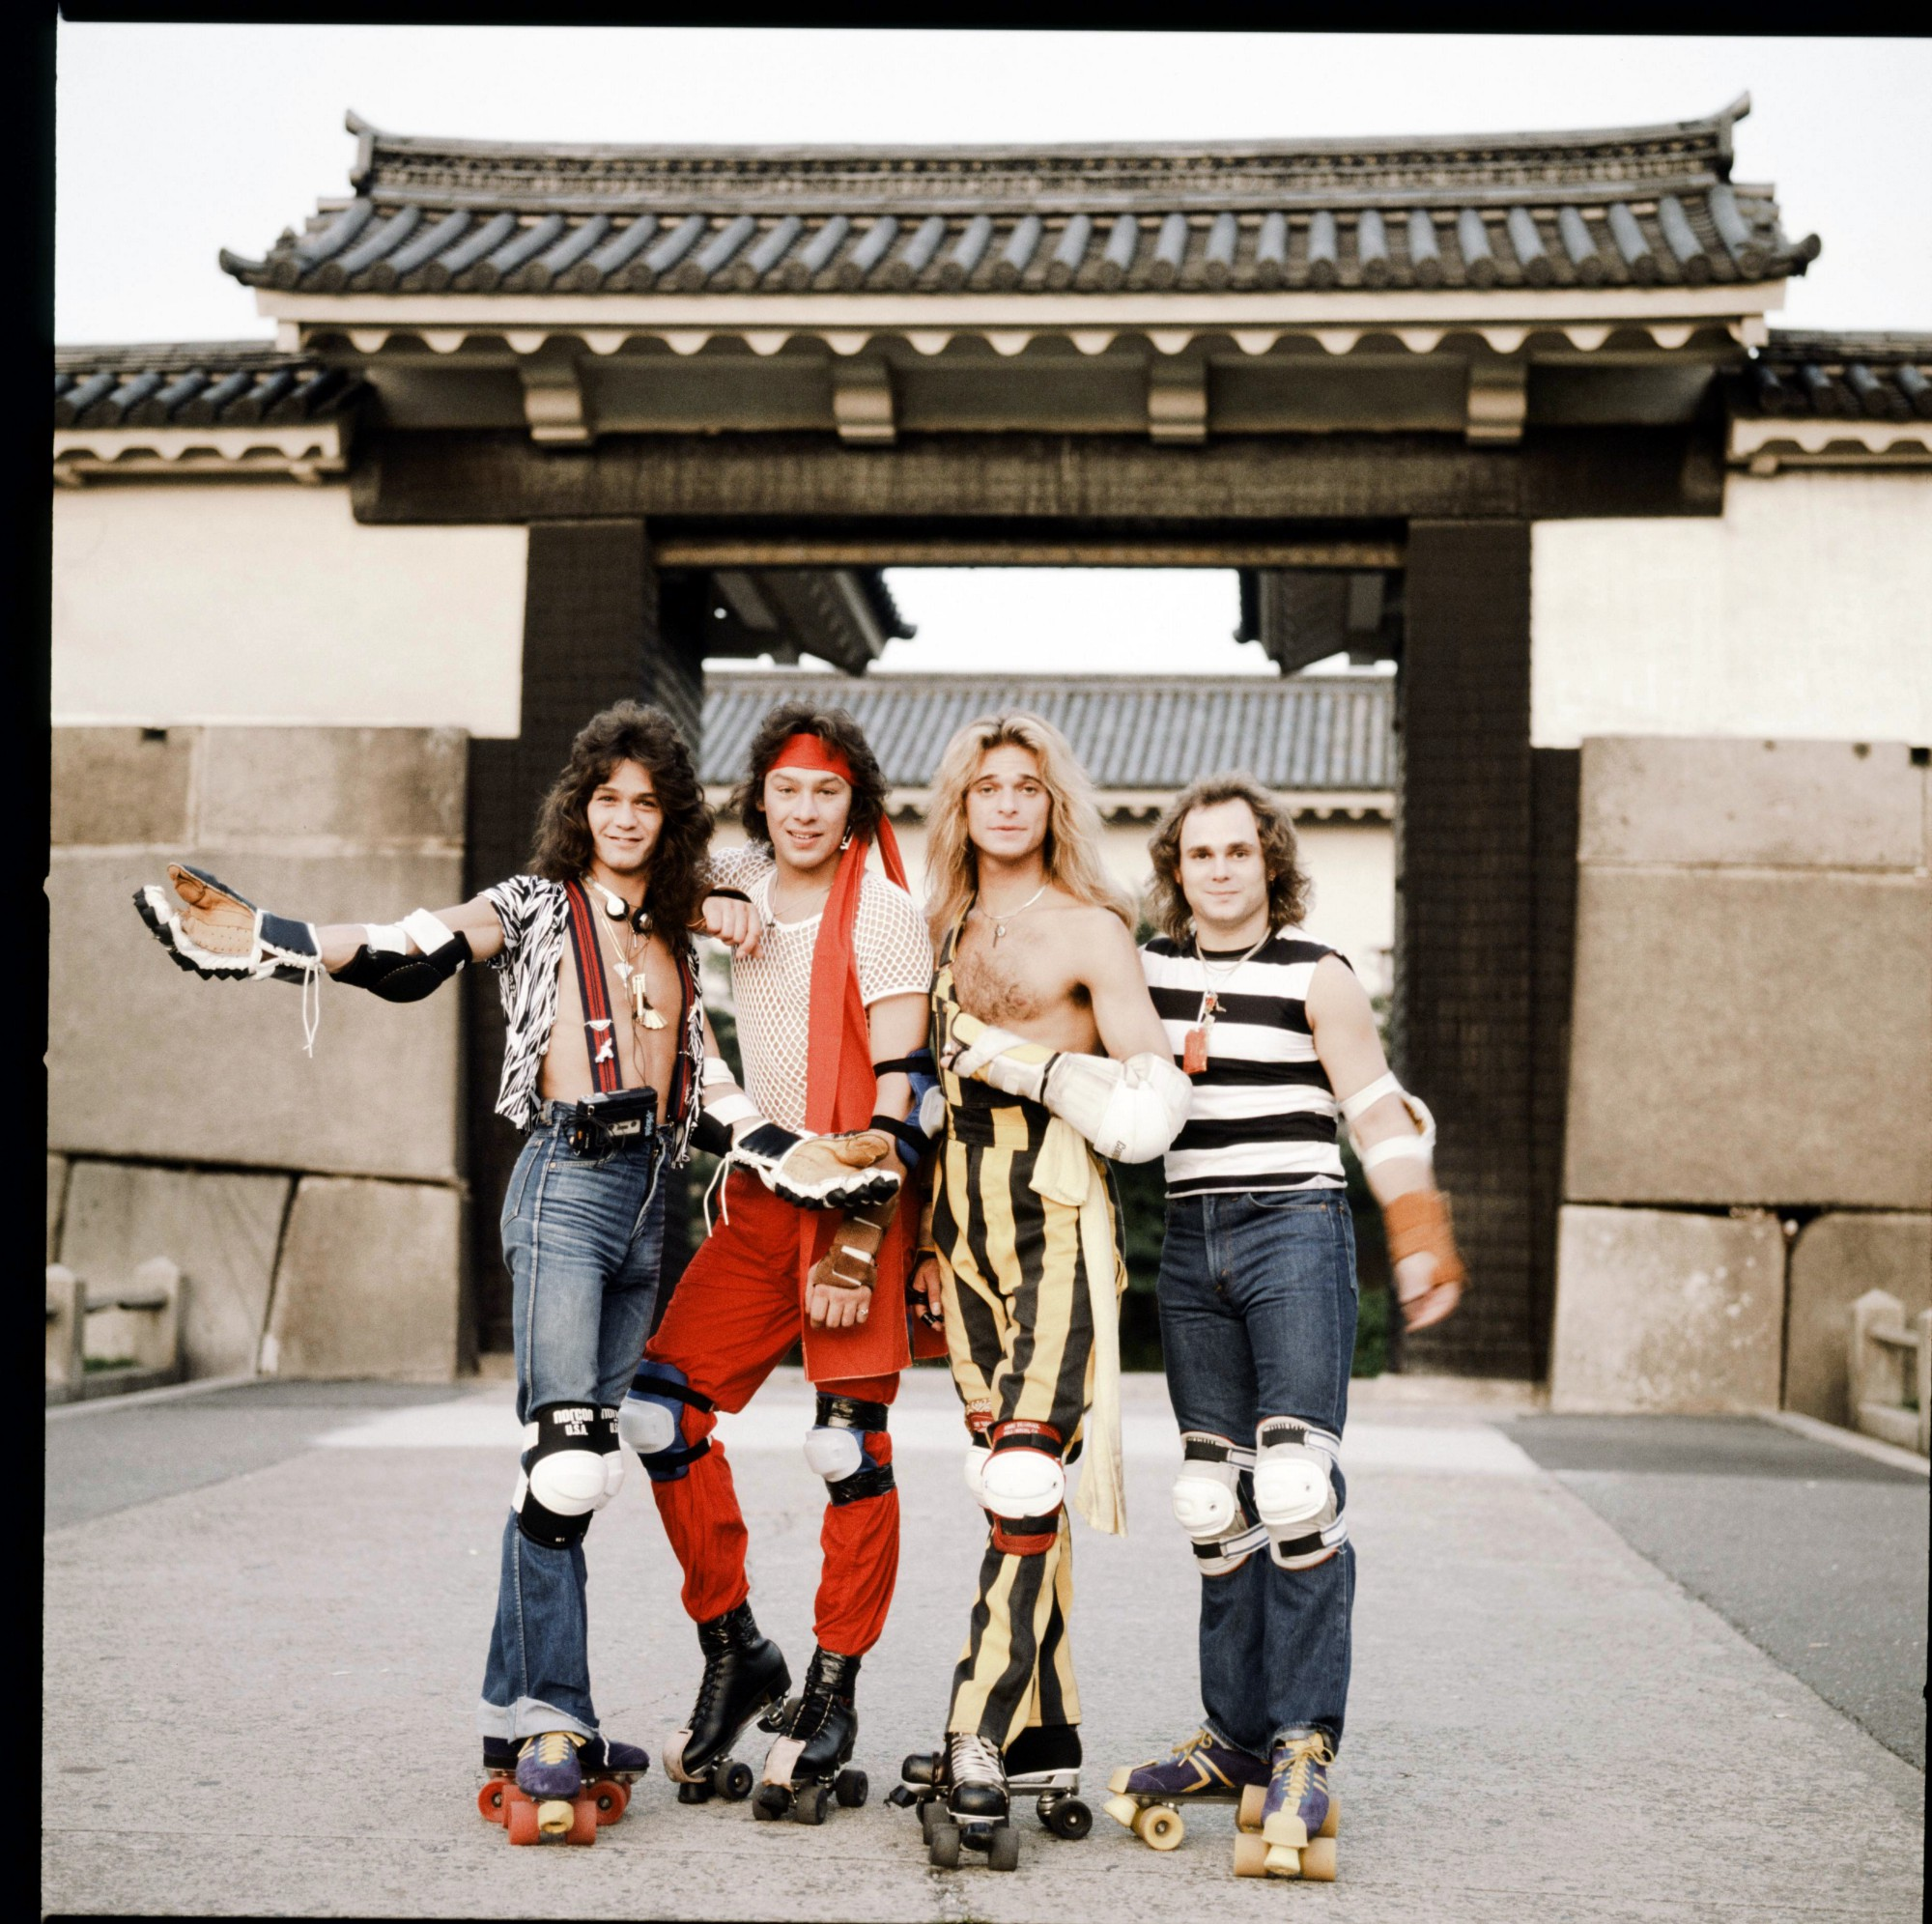 Photos of rock stars performing in Japan in the 1970s and 80s